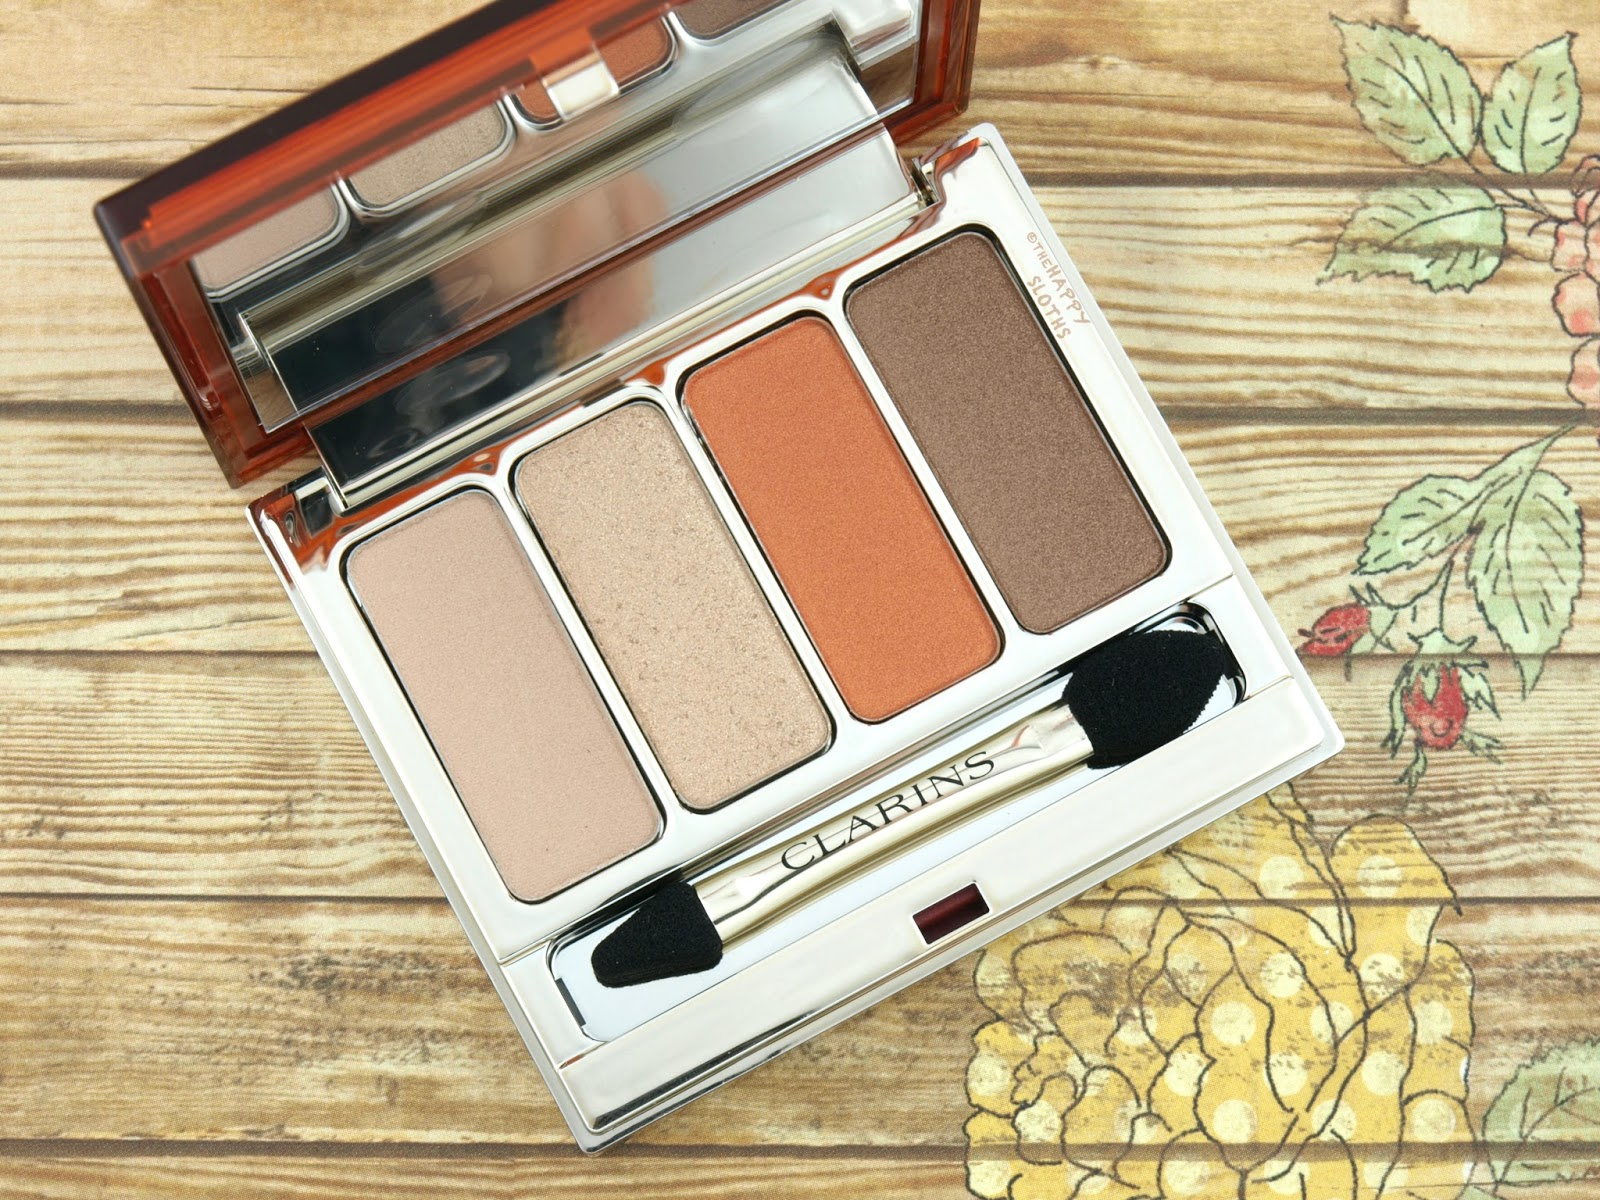 Clarins Summer 2017 4-Colour Eyeshadow Palette: Review and Swatches